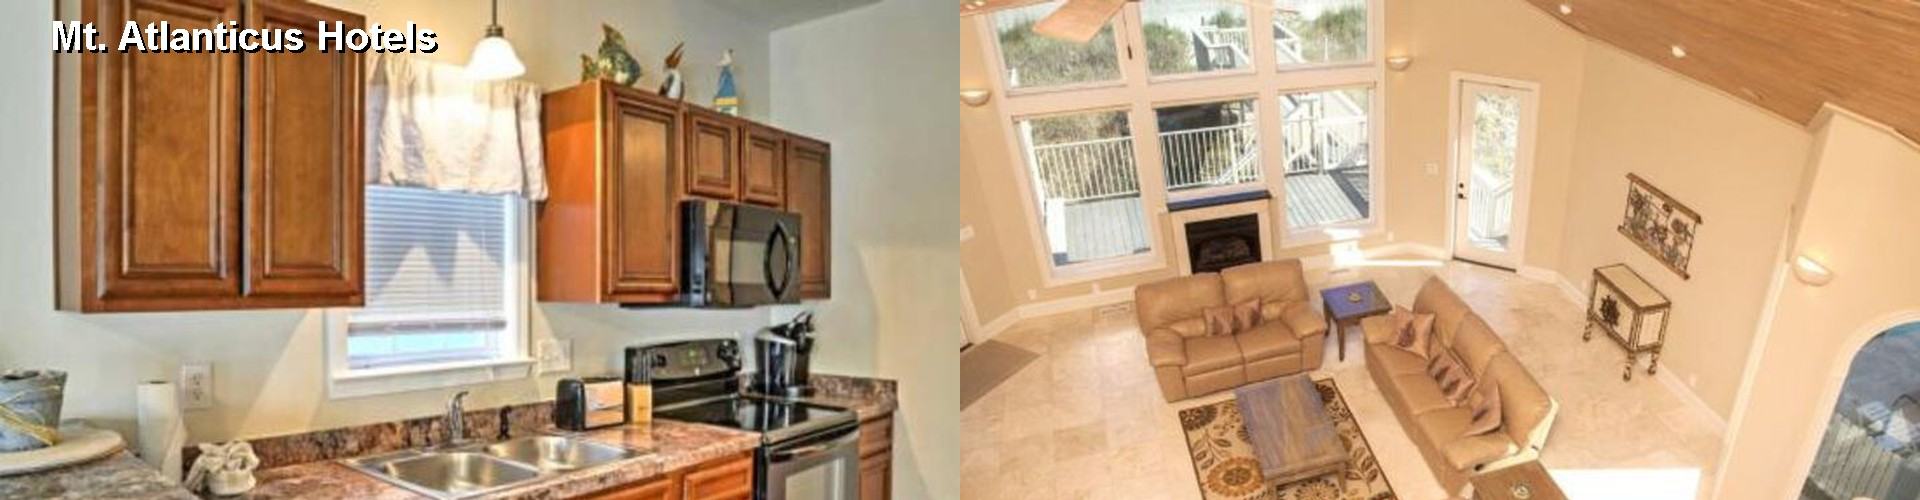 5 Best Hotels near Mt. Atlanticus